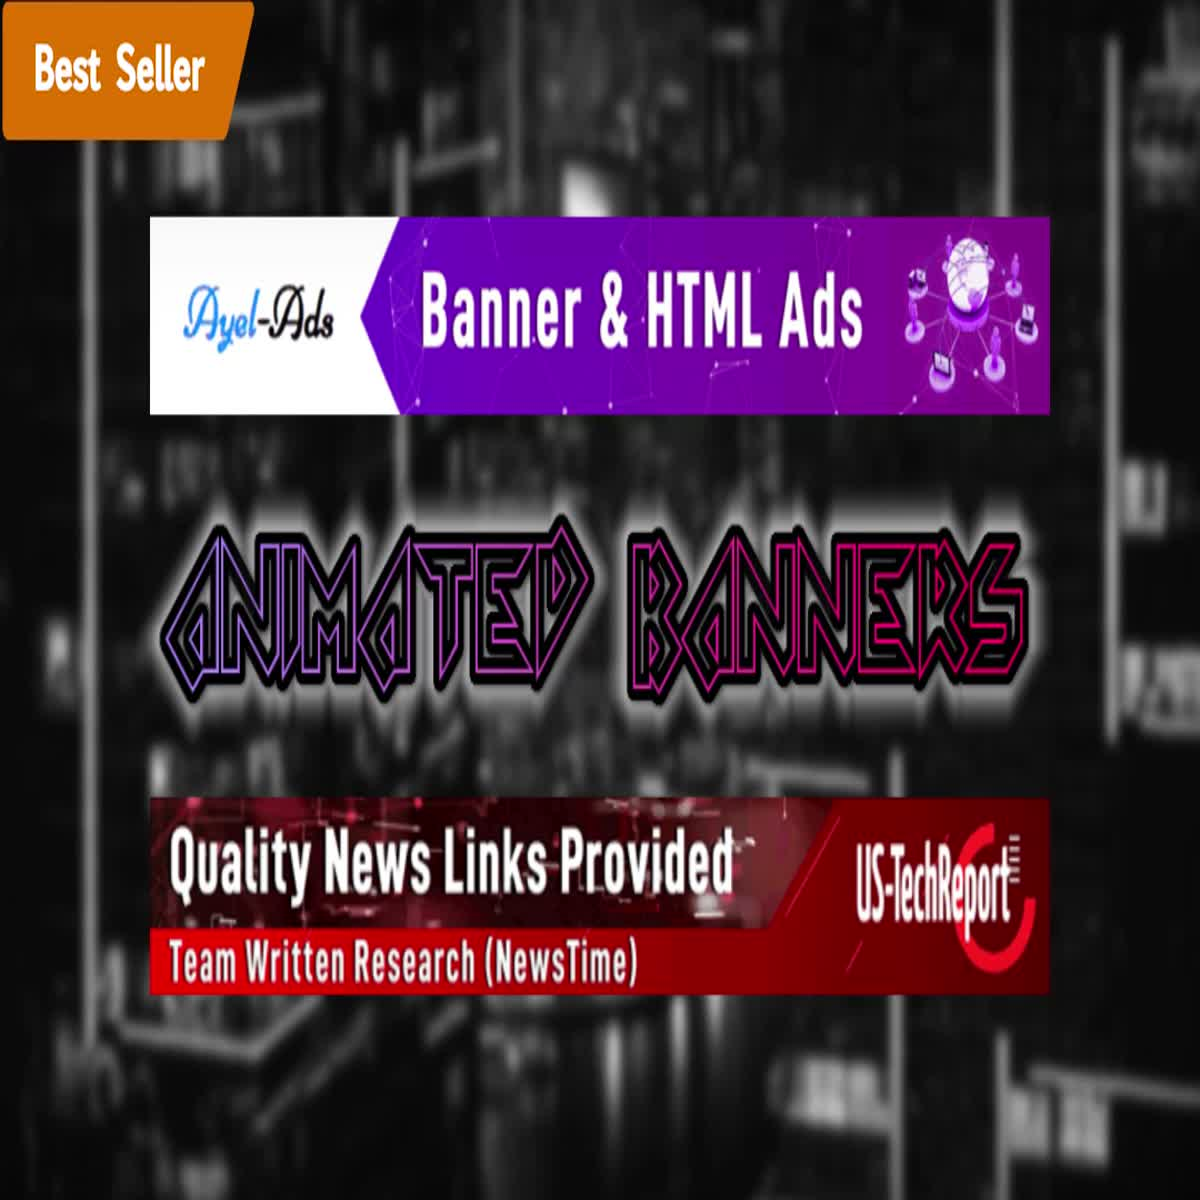 I will design eye catching animated HTML5 / Gif BANNER ADS for Google ads or website advertising.